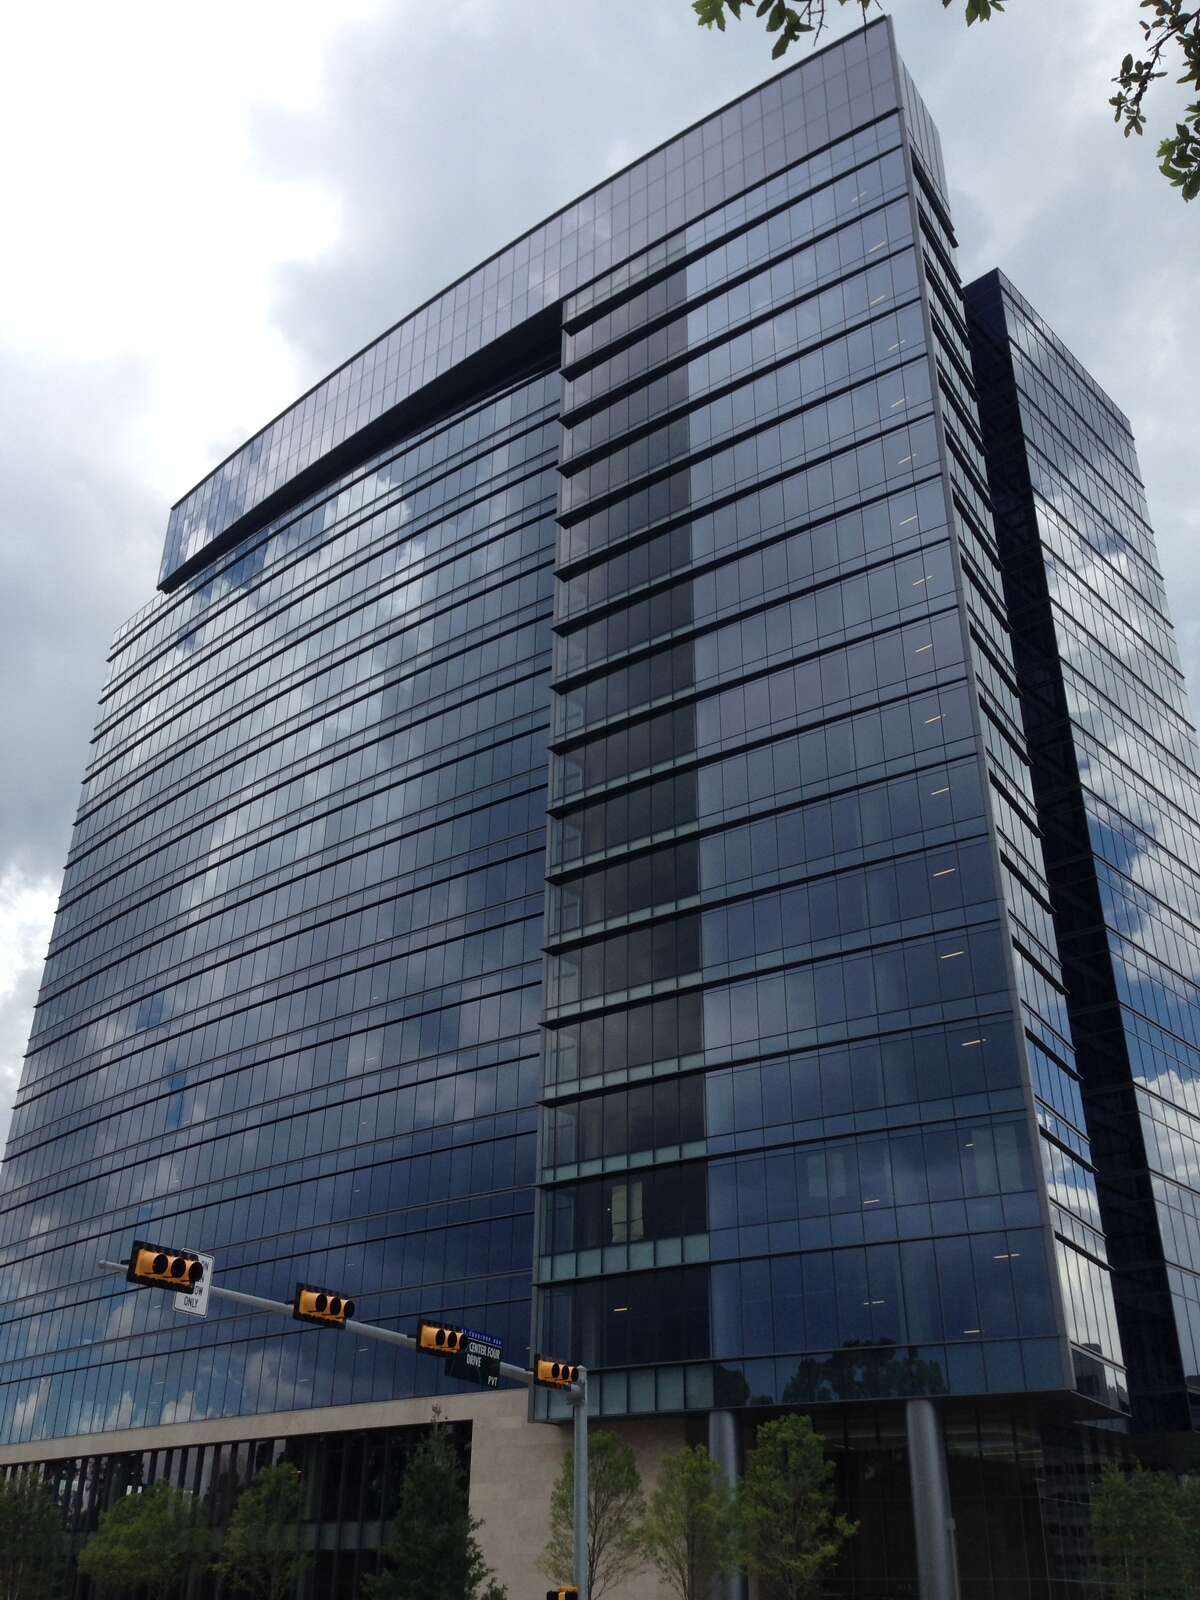 Energy Center Five, a 524,399-square-foot building at 915 N. Eldridge Parkway developed by Trammell Crow Co., features energy efficient elements.